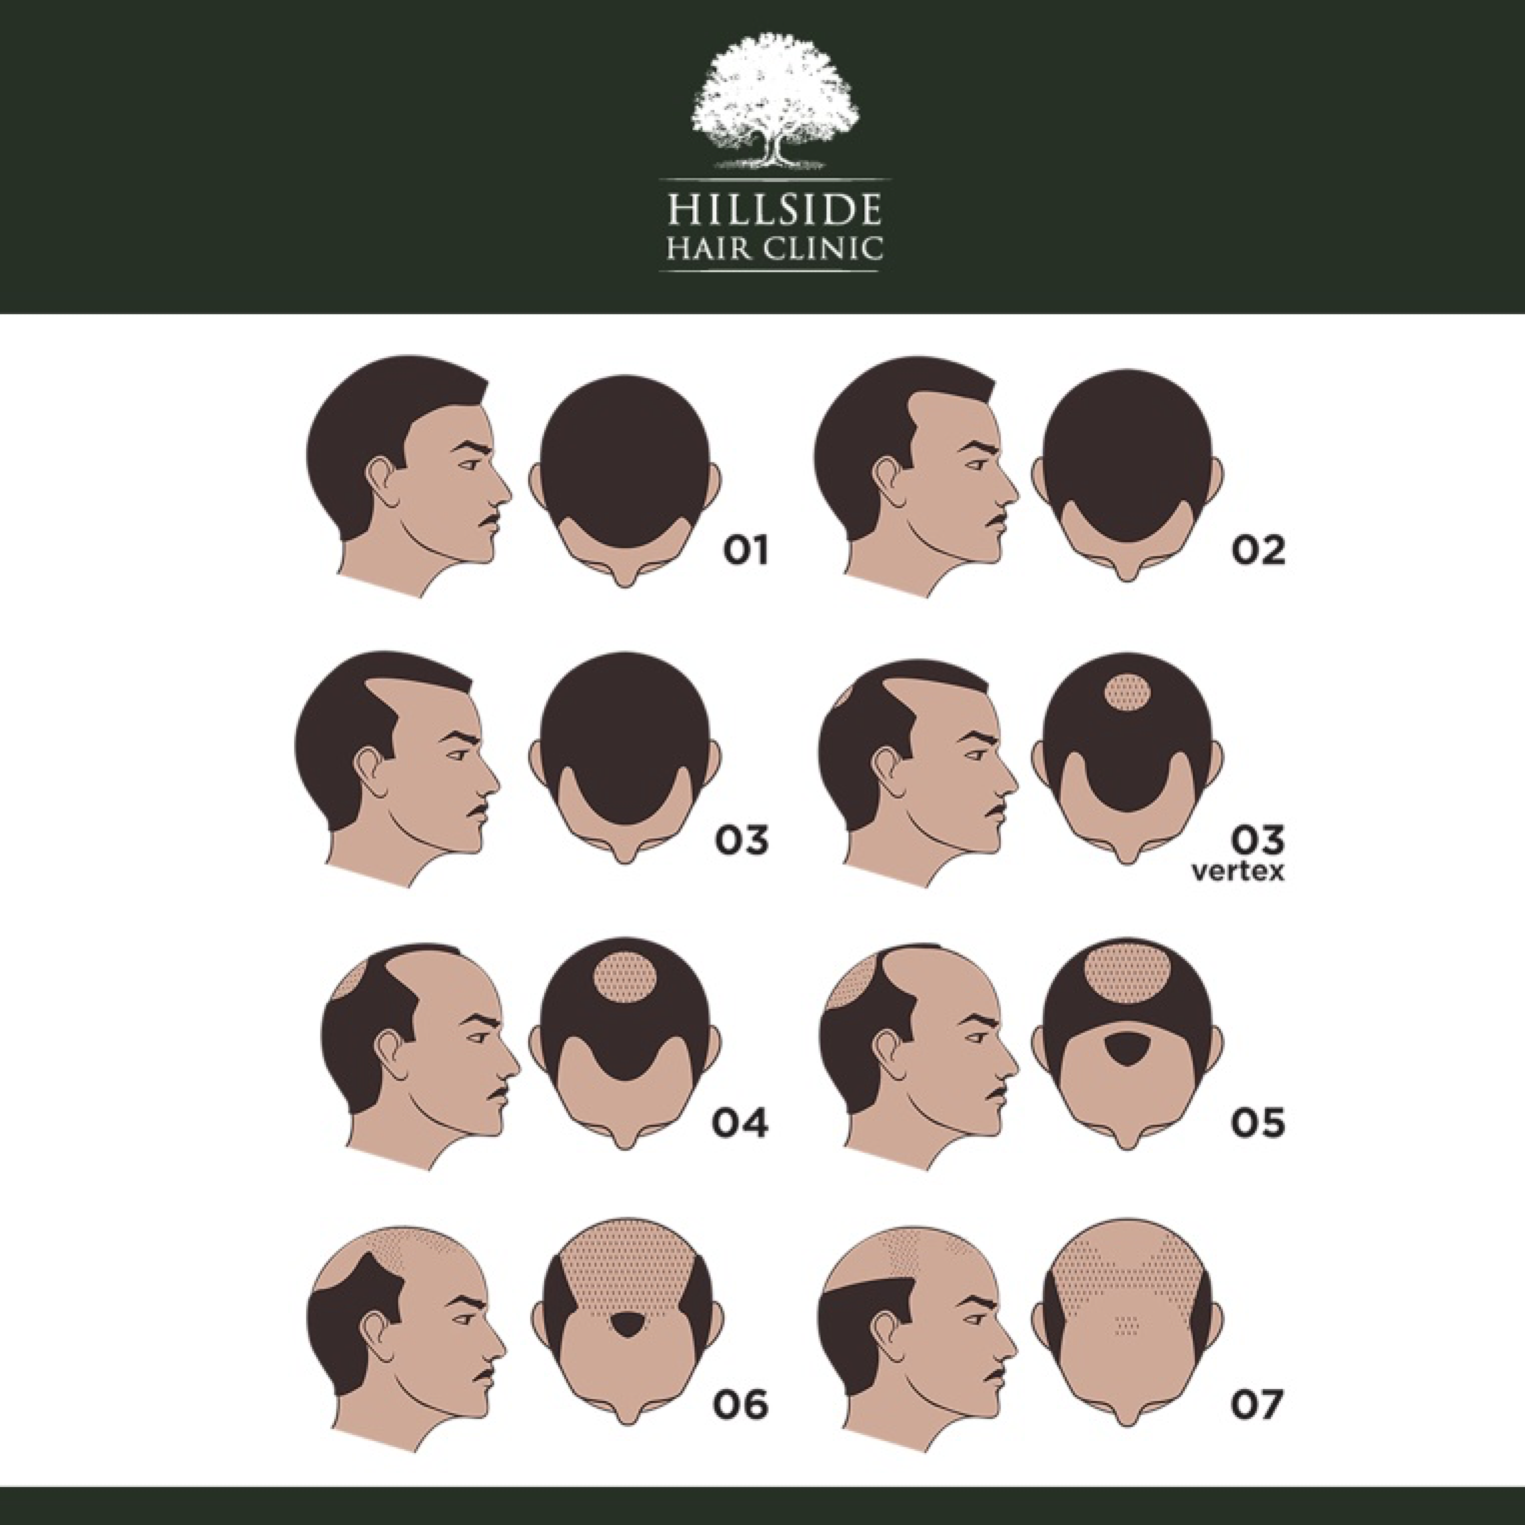 hillside-hair-clinic-male-hair-loss-illustration